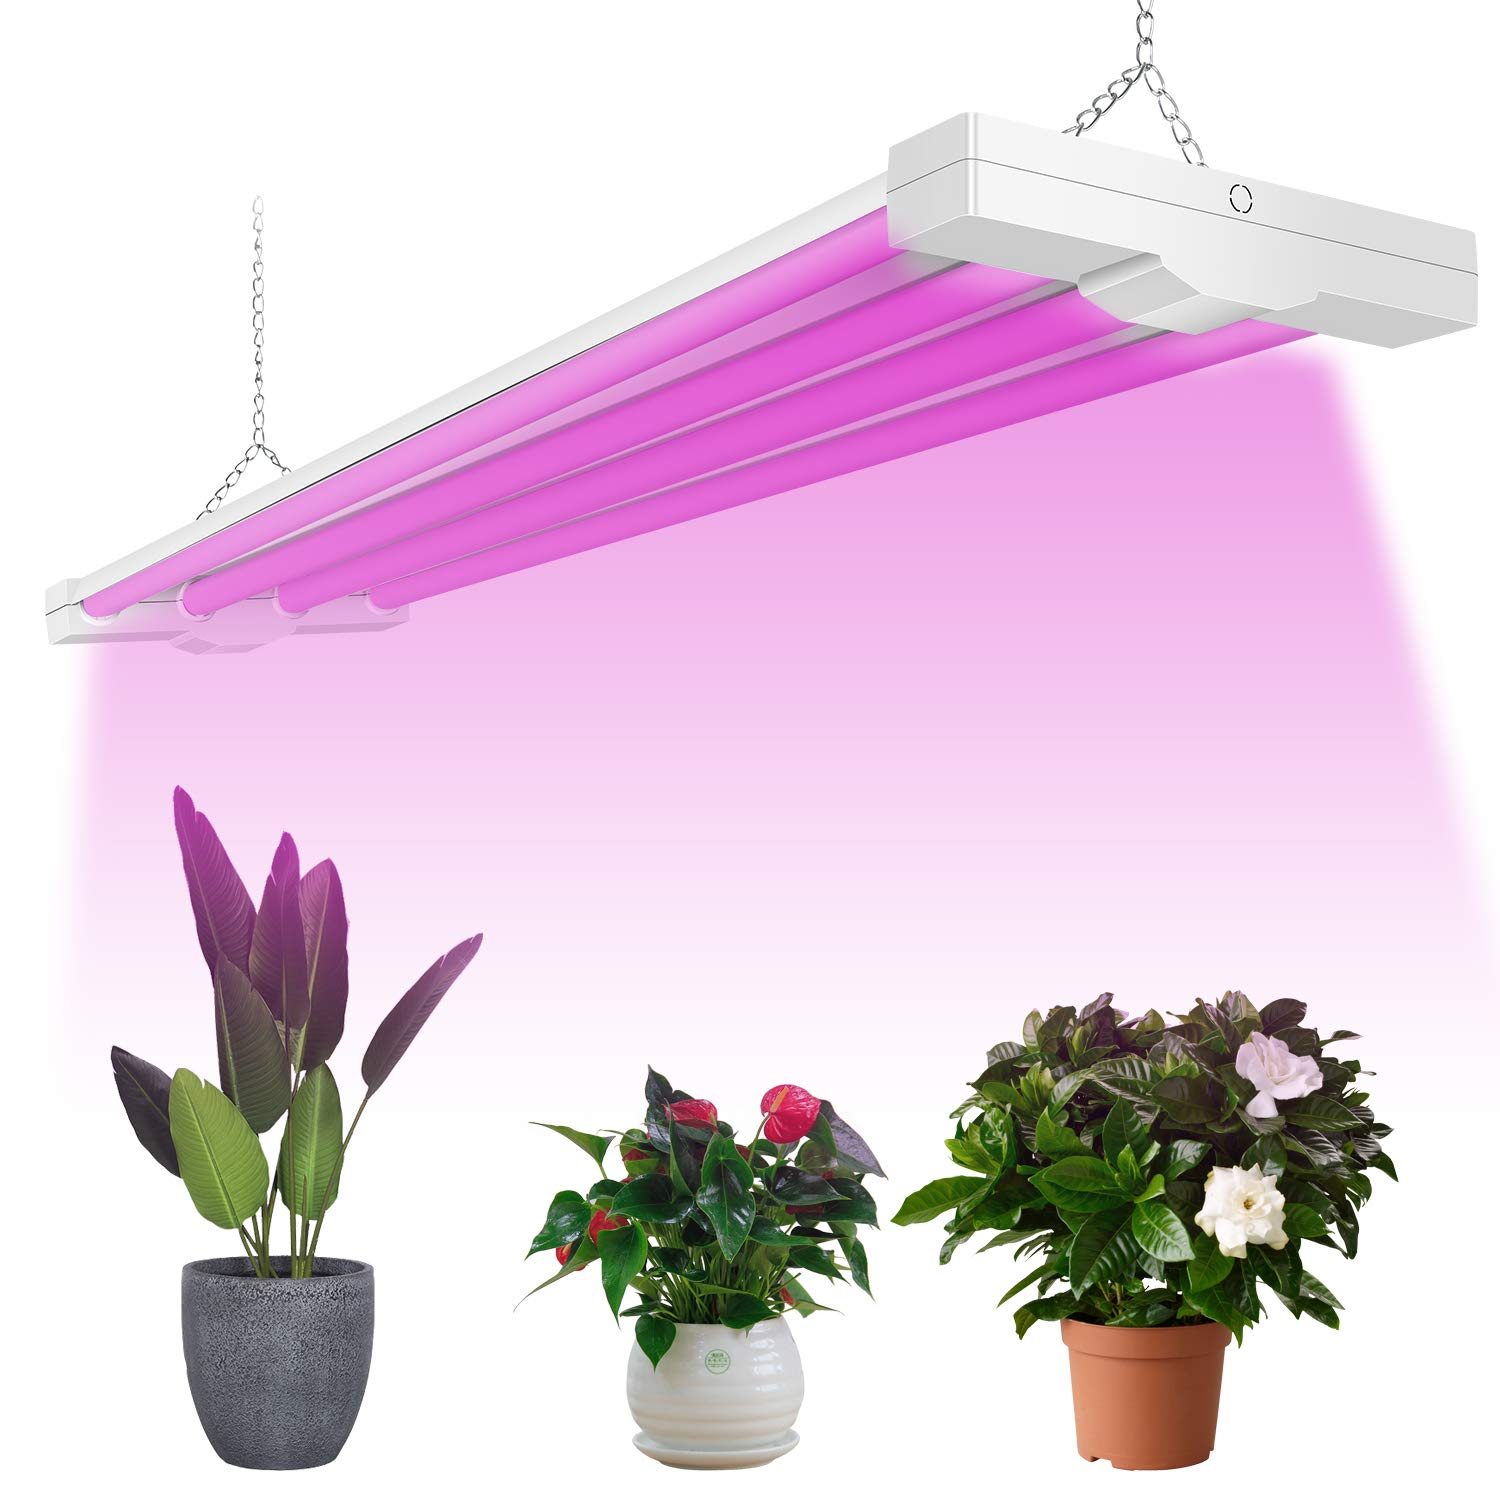 AntLux 4ft LED Grow Light 80W Full Spectrum Integrated Growing Lamp Fixture  for Greenhouse Hydroponic Indoor Plant Seedling Veg and Flower, Plug in